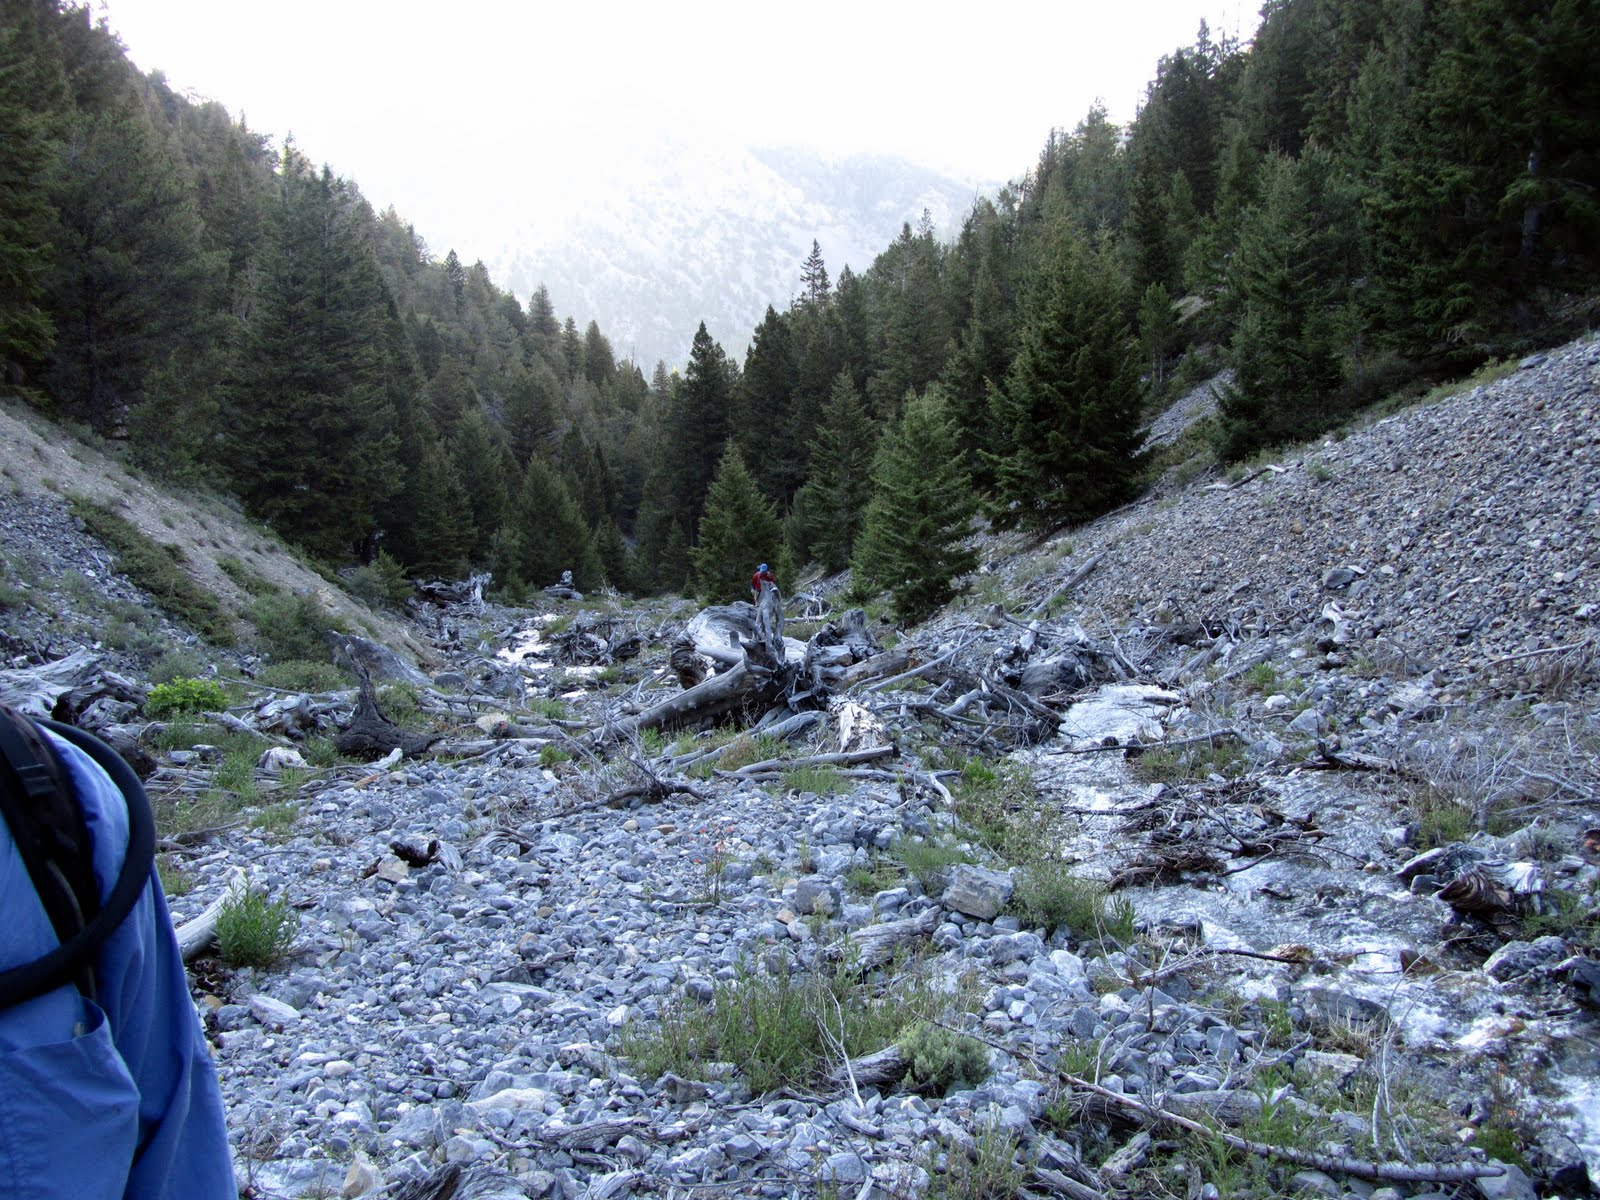 The route climbing up through the lower forest. George Reinier Photo